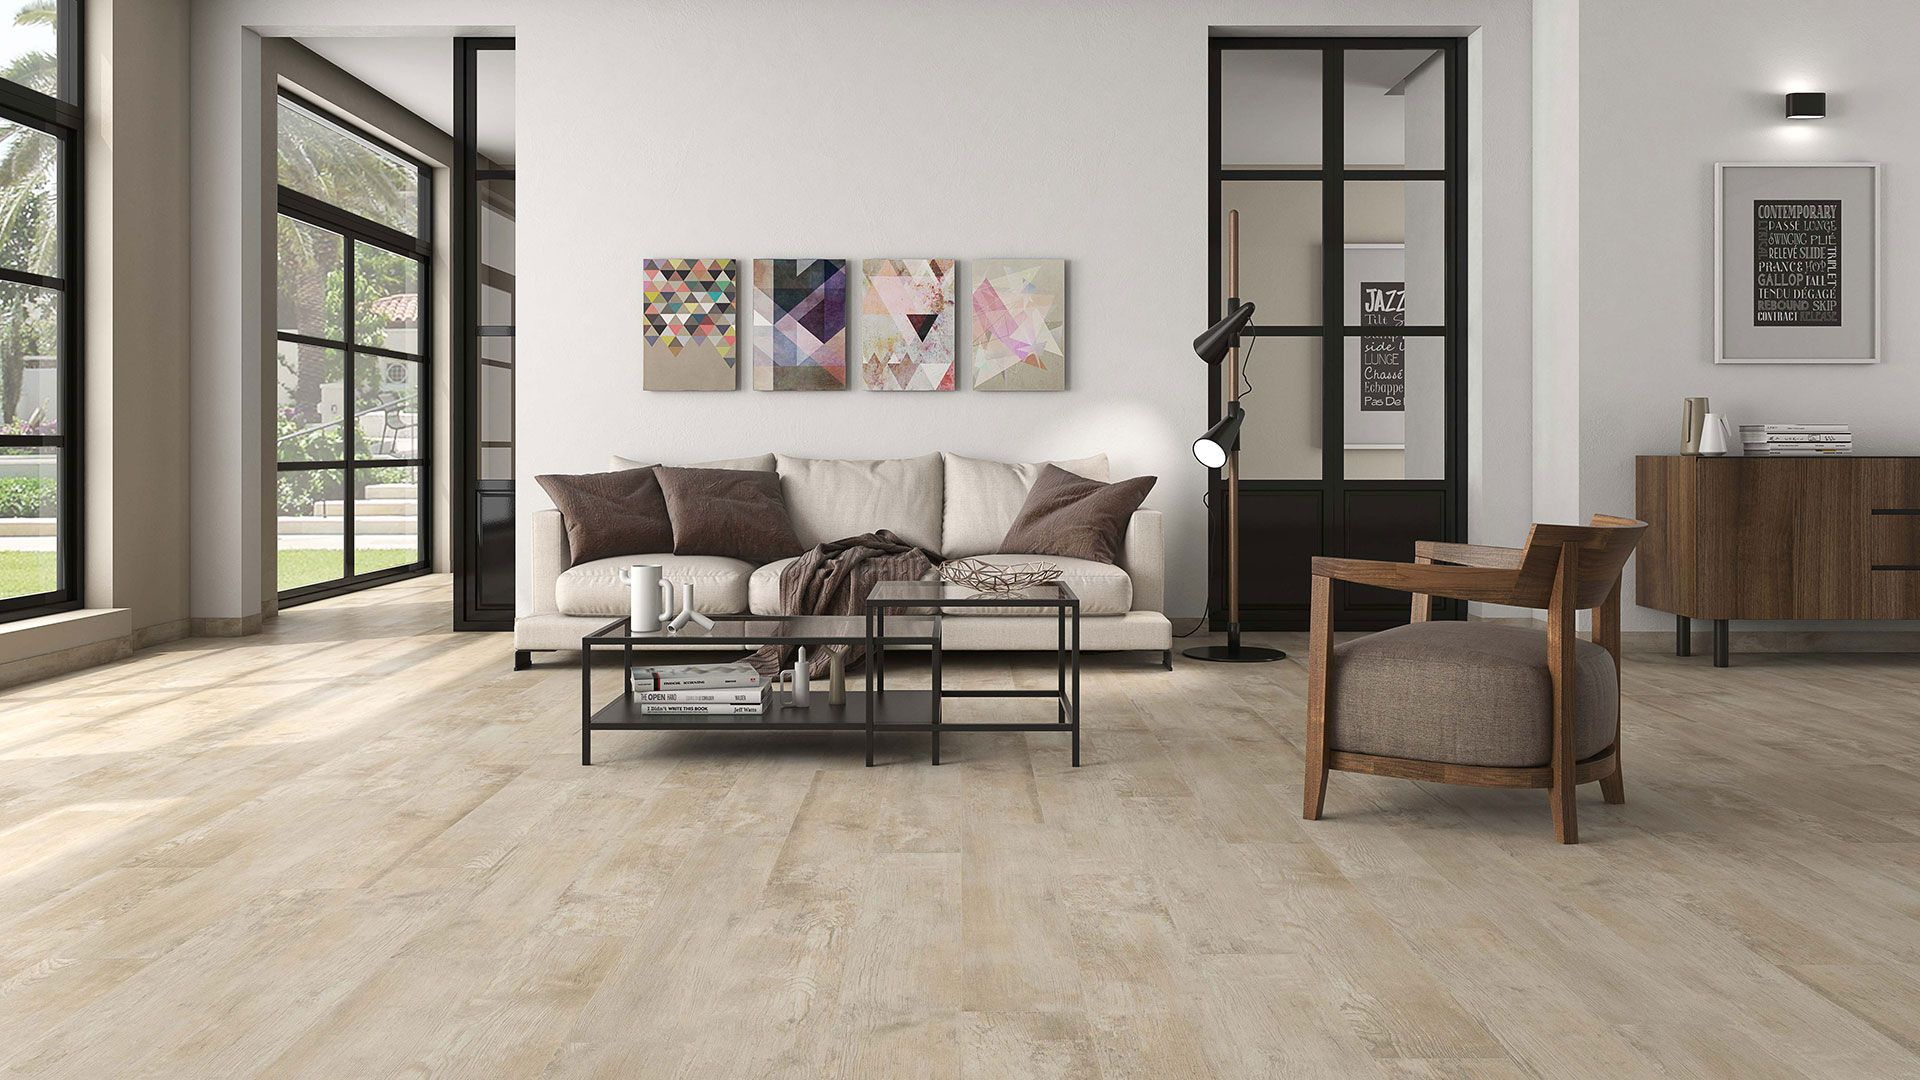 Pin By Catherine Tan On Wooden Floor Tiles Tile Floor Living Room Living Room Tiles Dark Wood Living Room